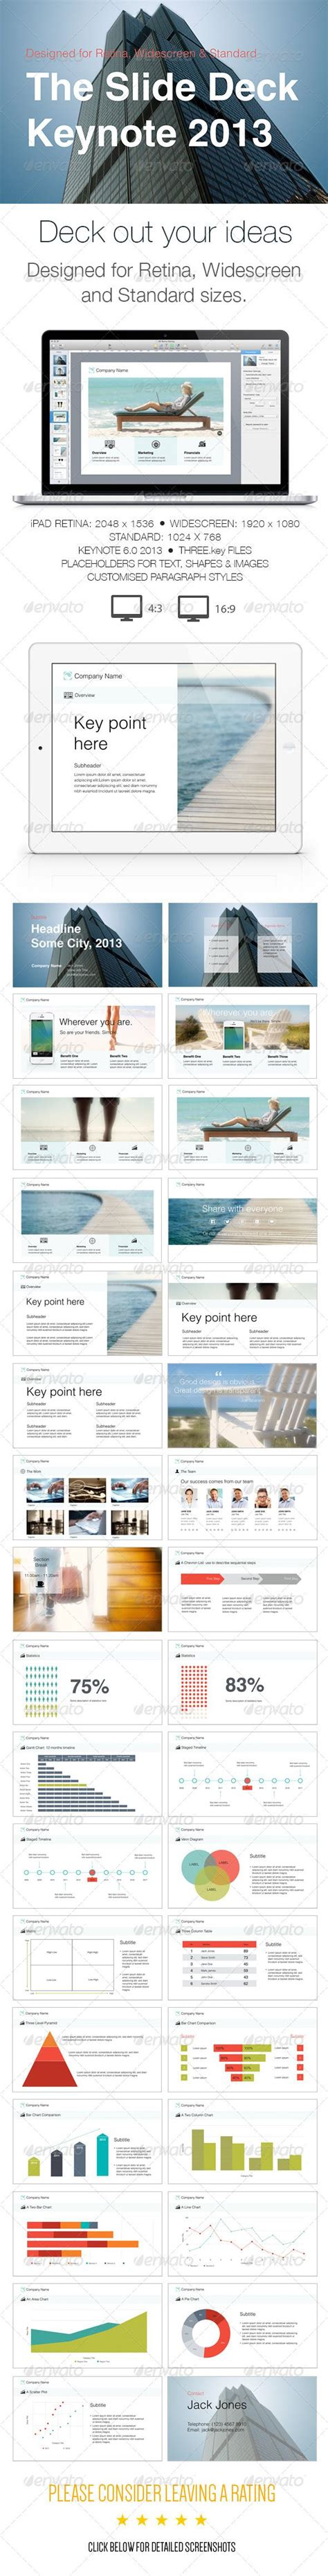 keynote theme default font 124 best images about keynote themes templates on